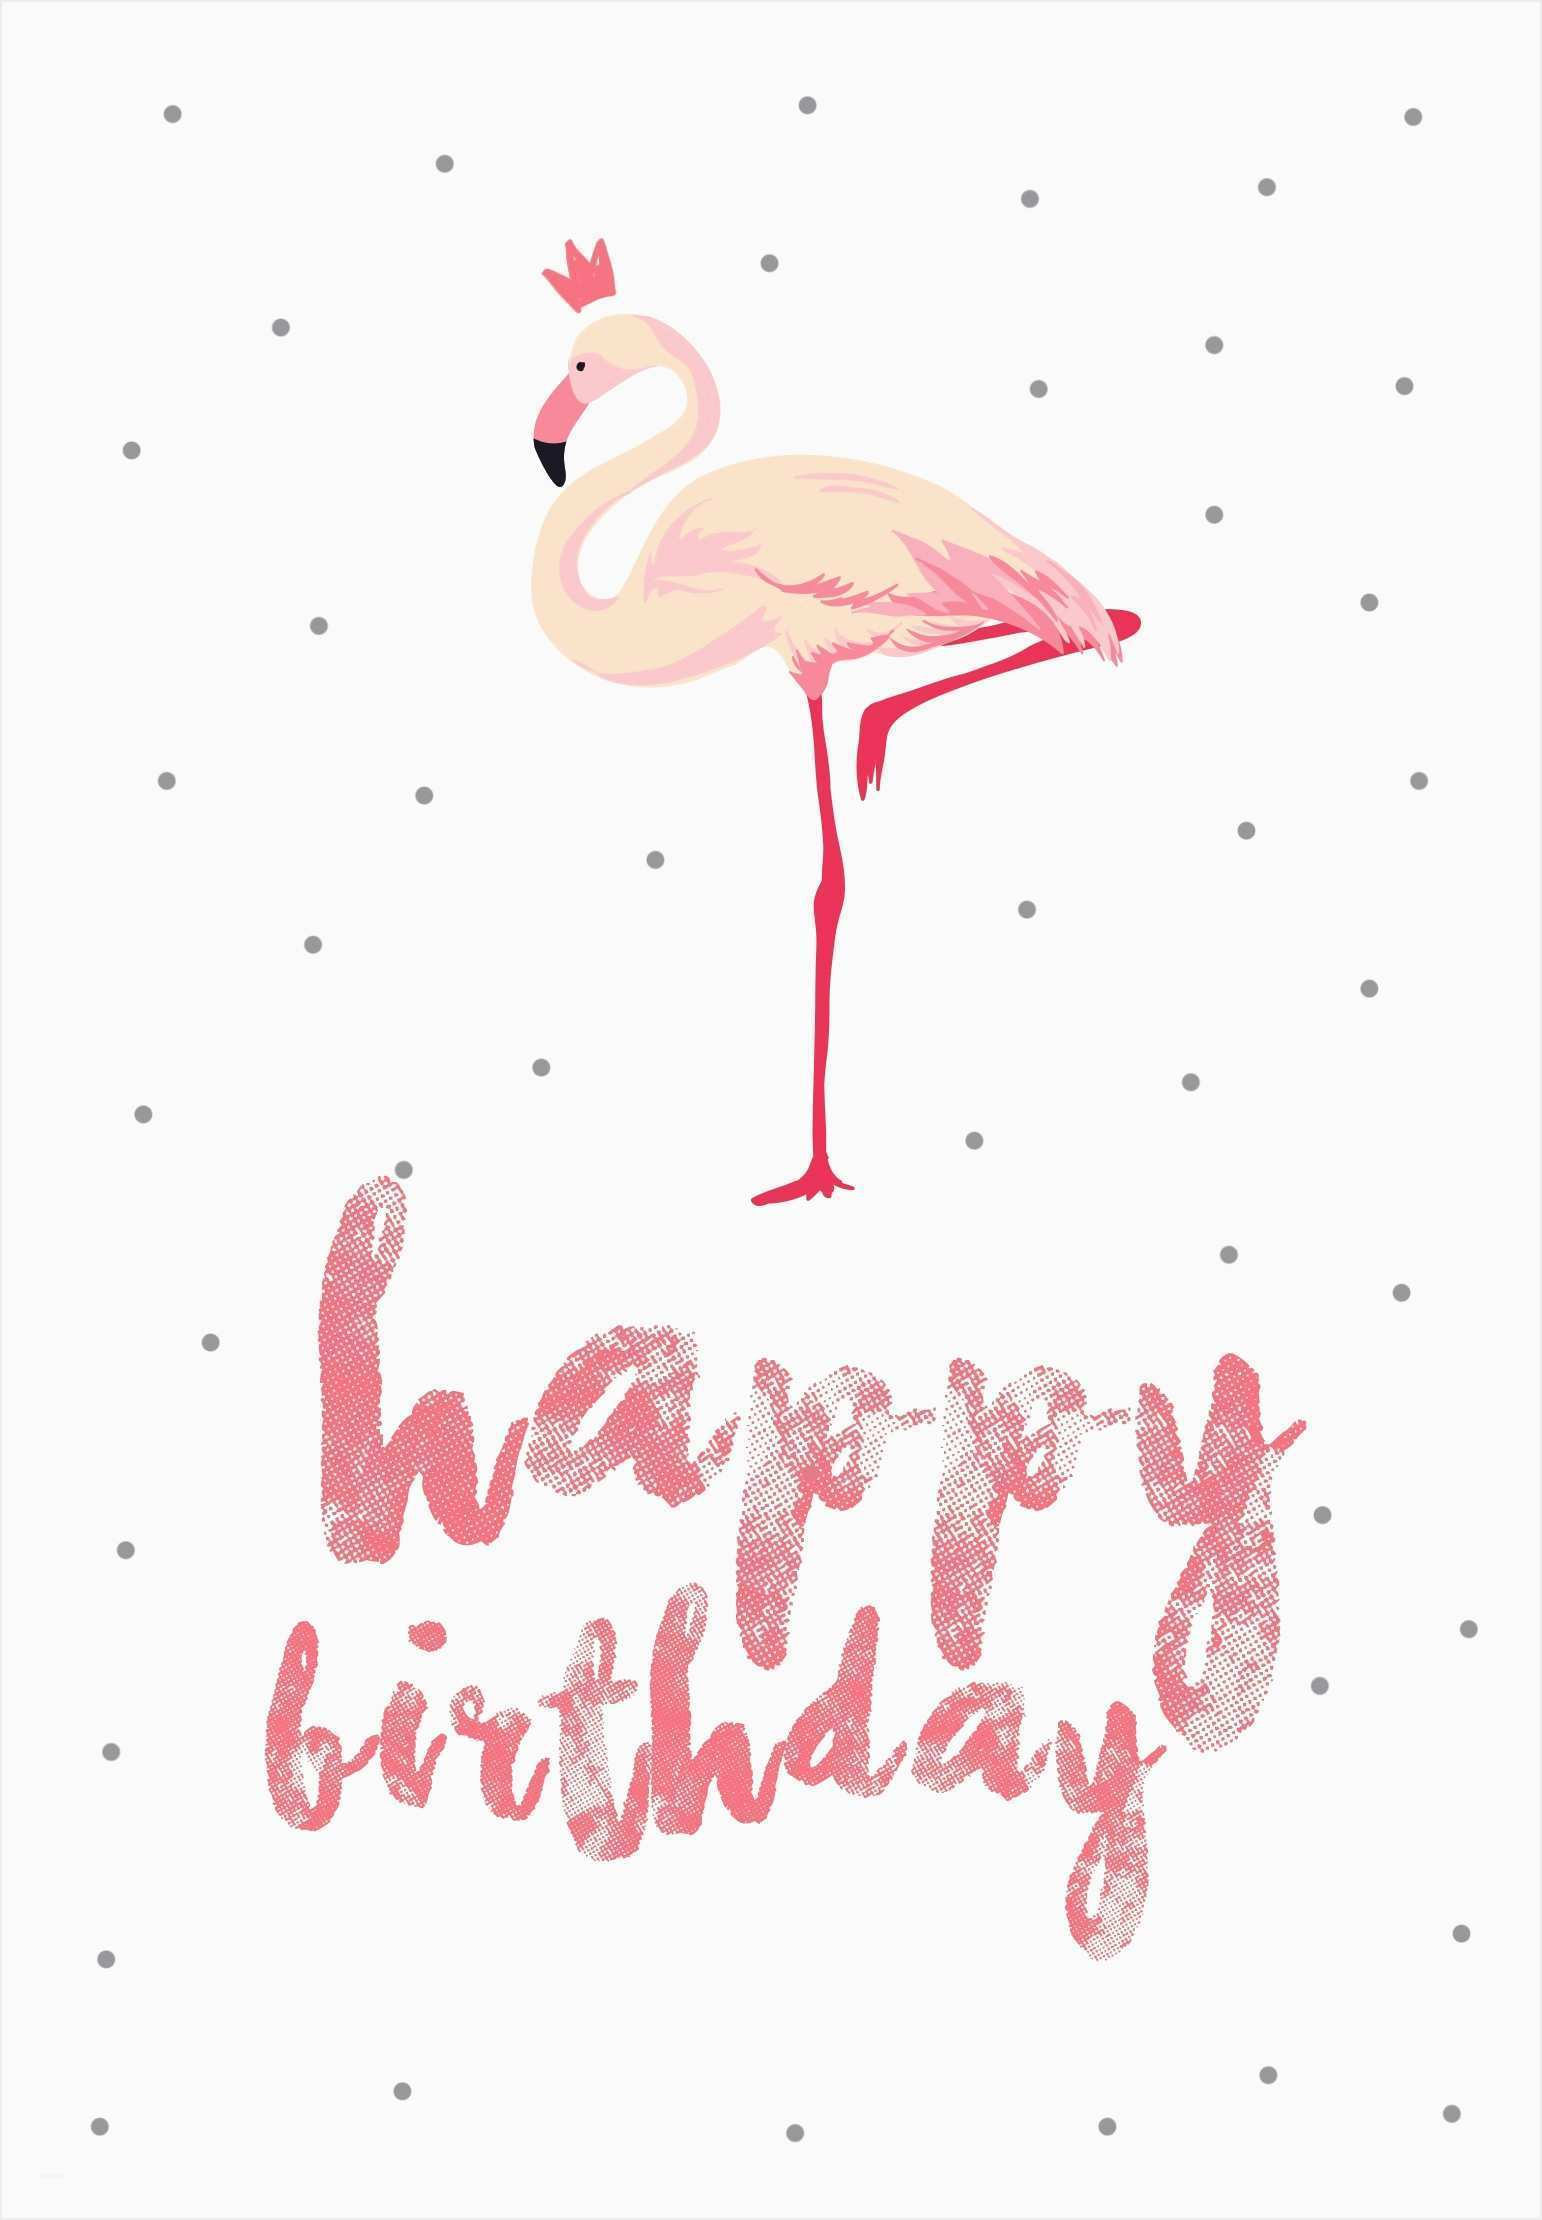 Free Printable Birthday Cards For Mom Best Of Free Printable - Free Printable Hallmark Cards